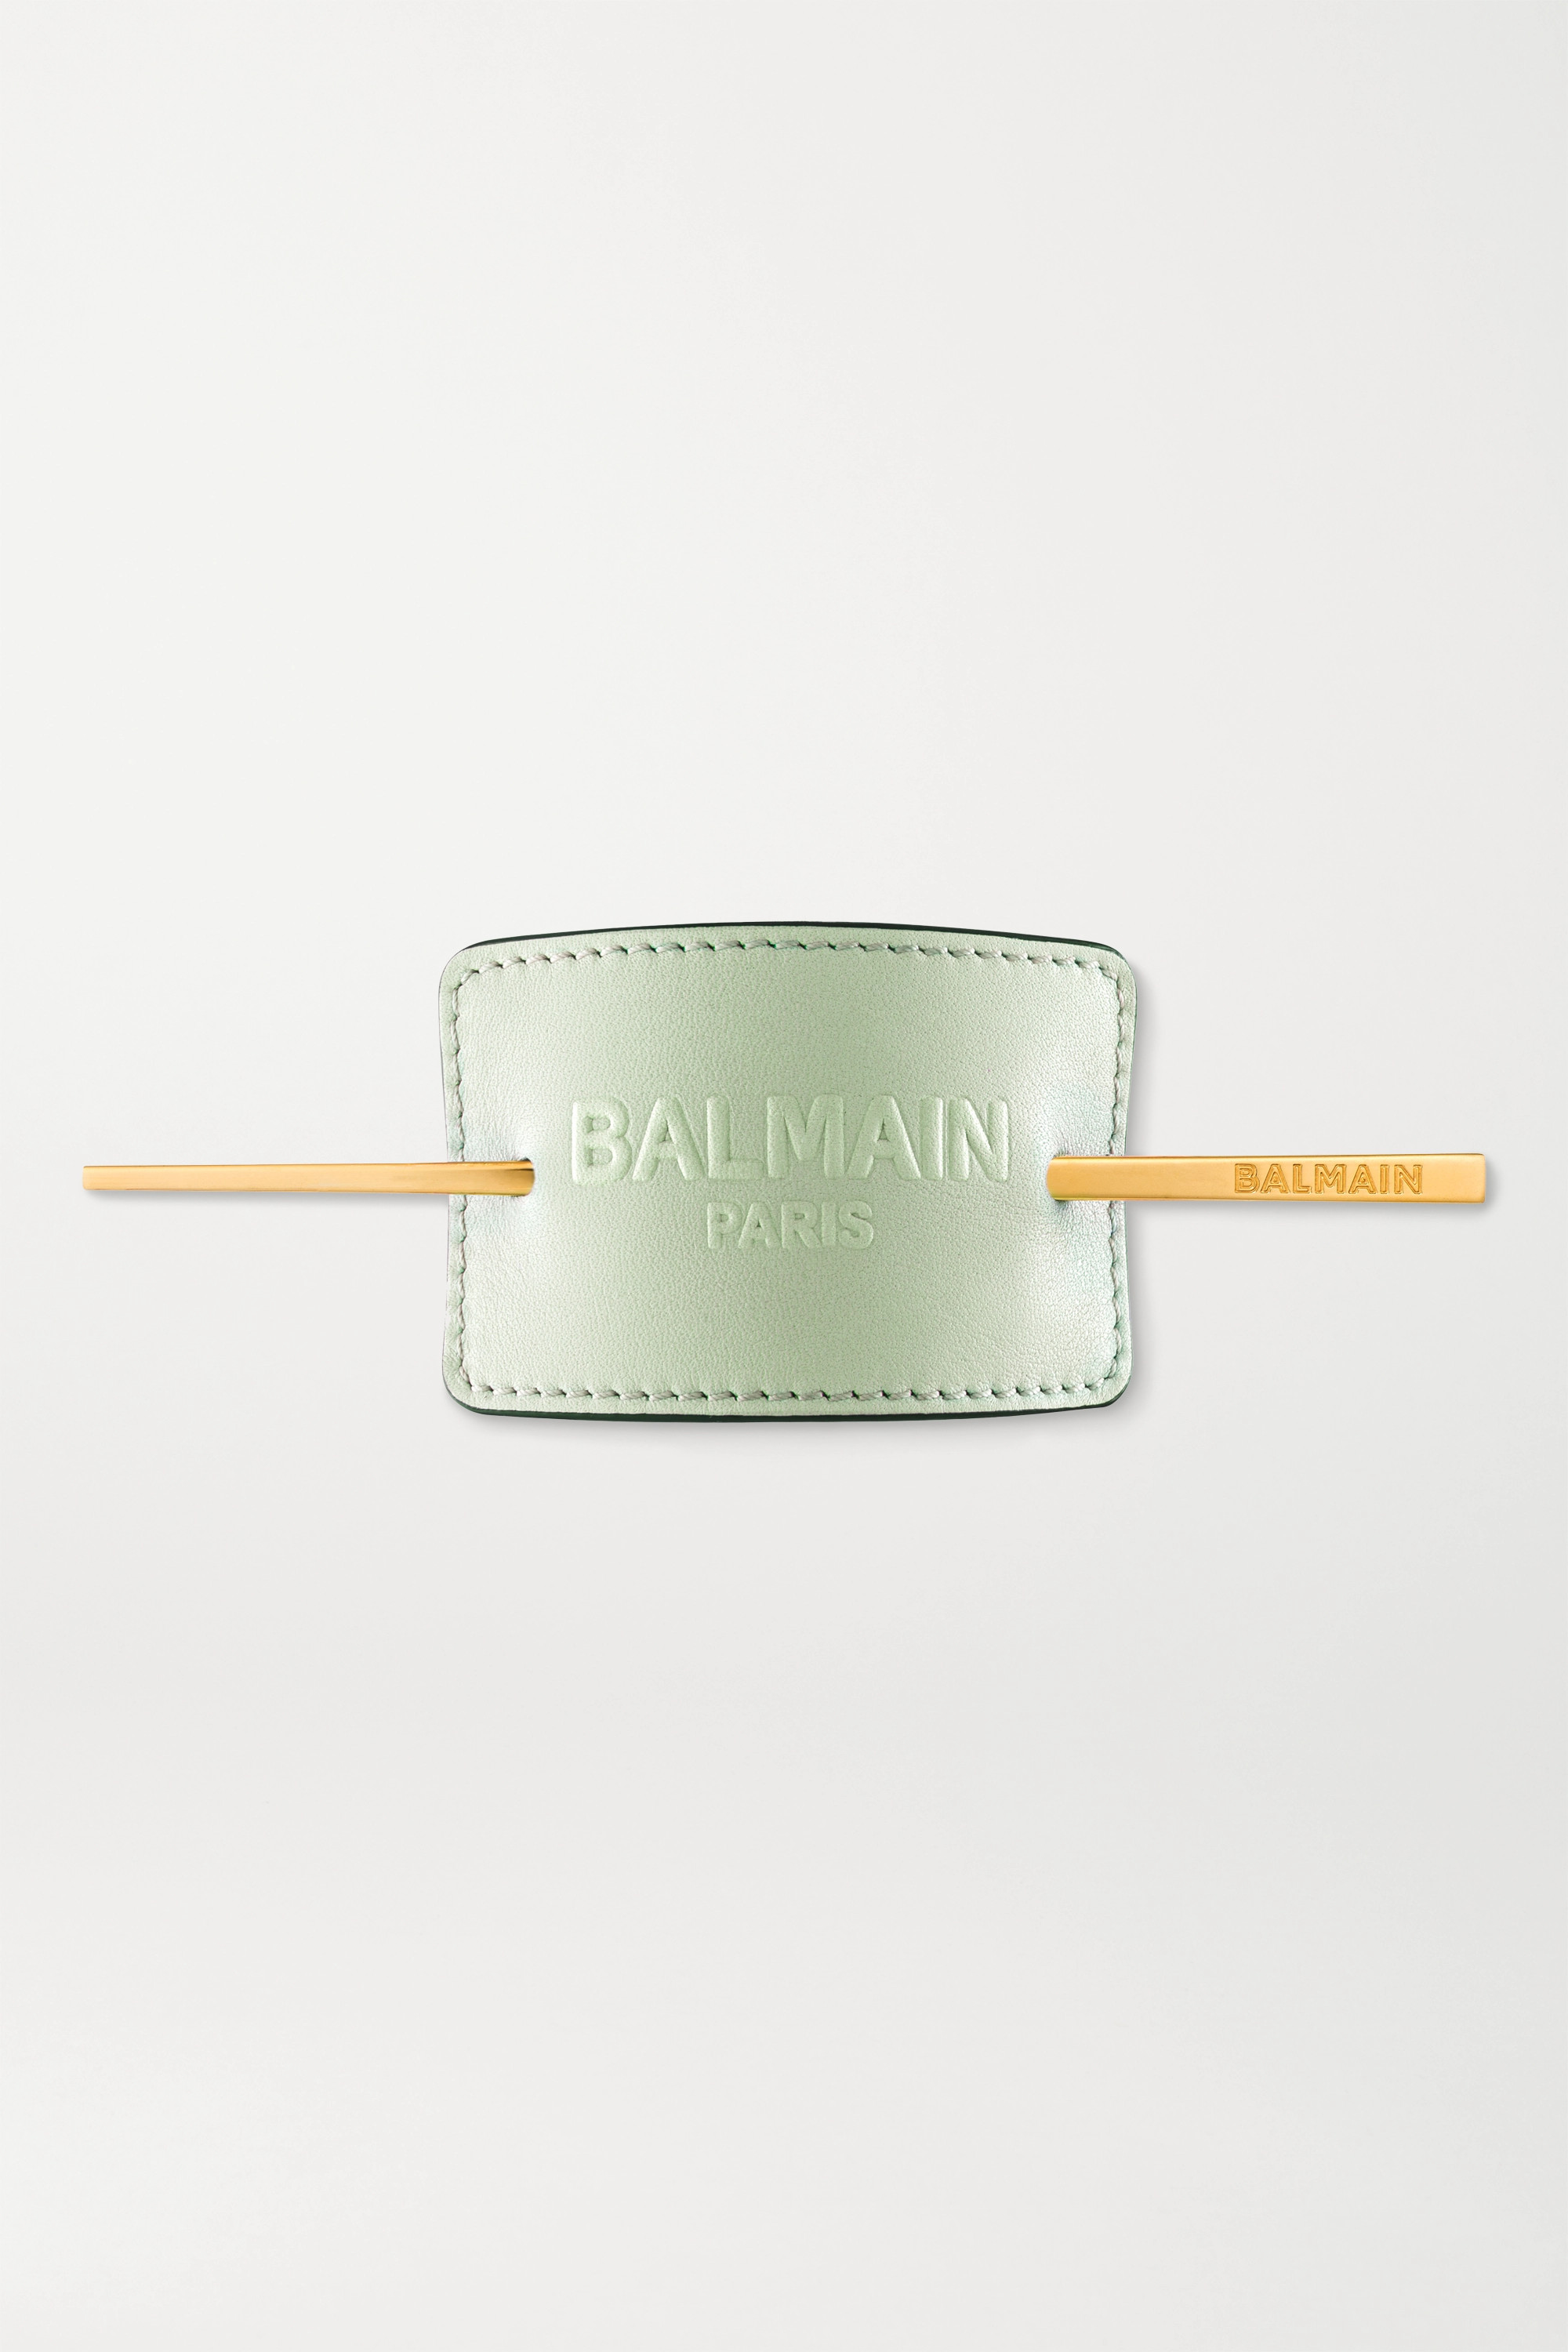 Balmain Paris Hair Couture Gold-plated And Embossed Leather Hair Pin - Mint In Green